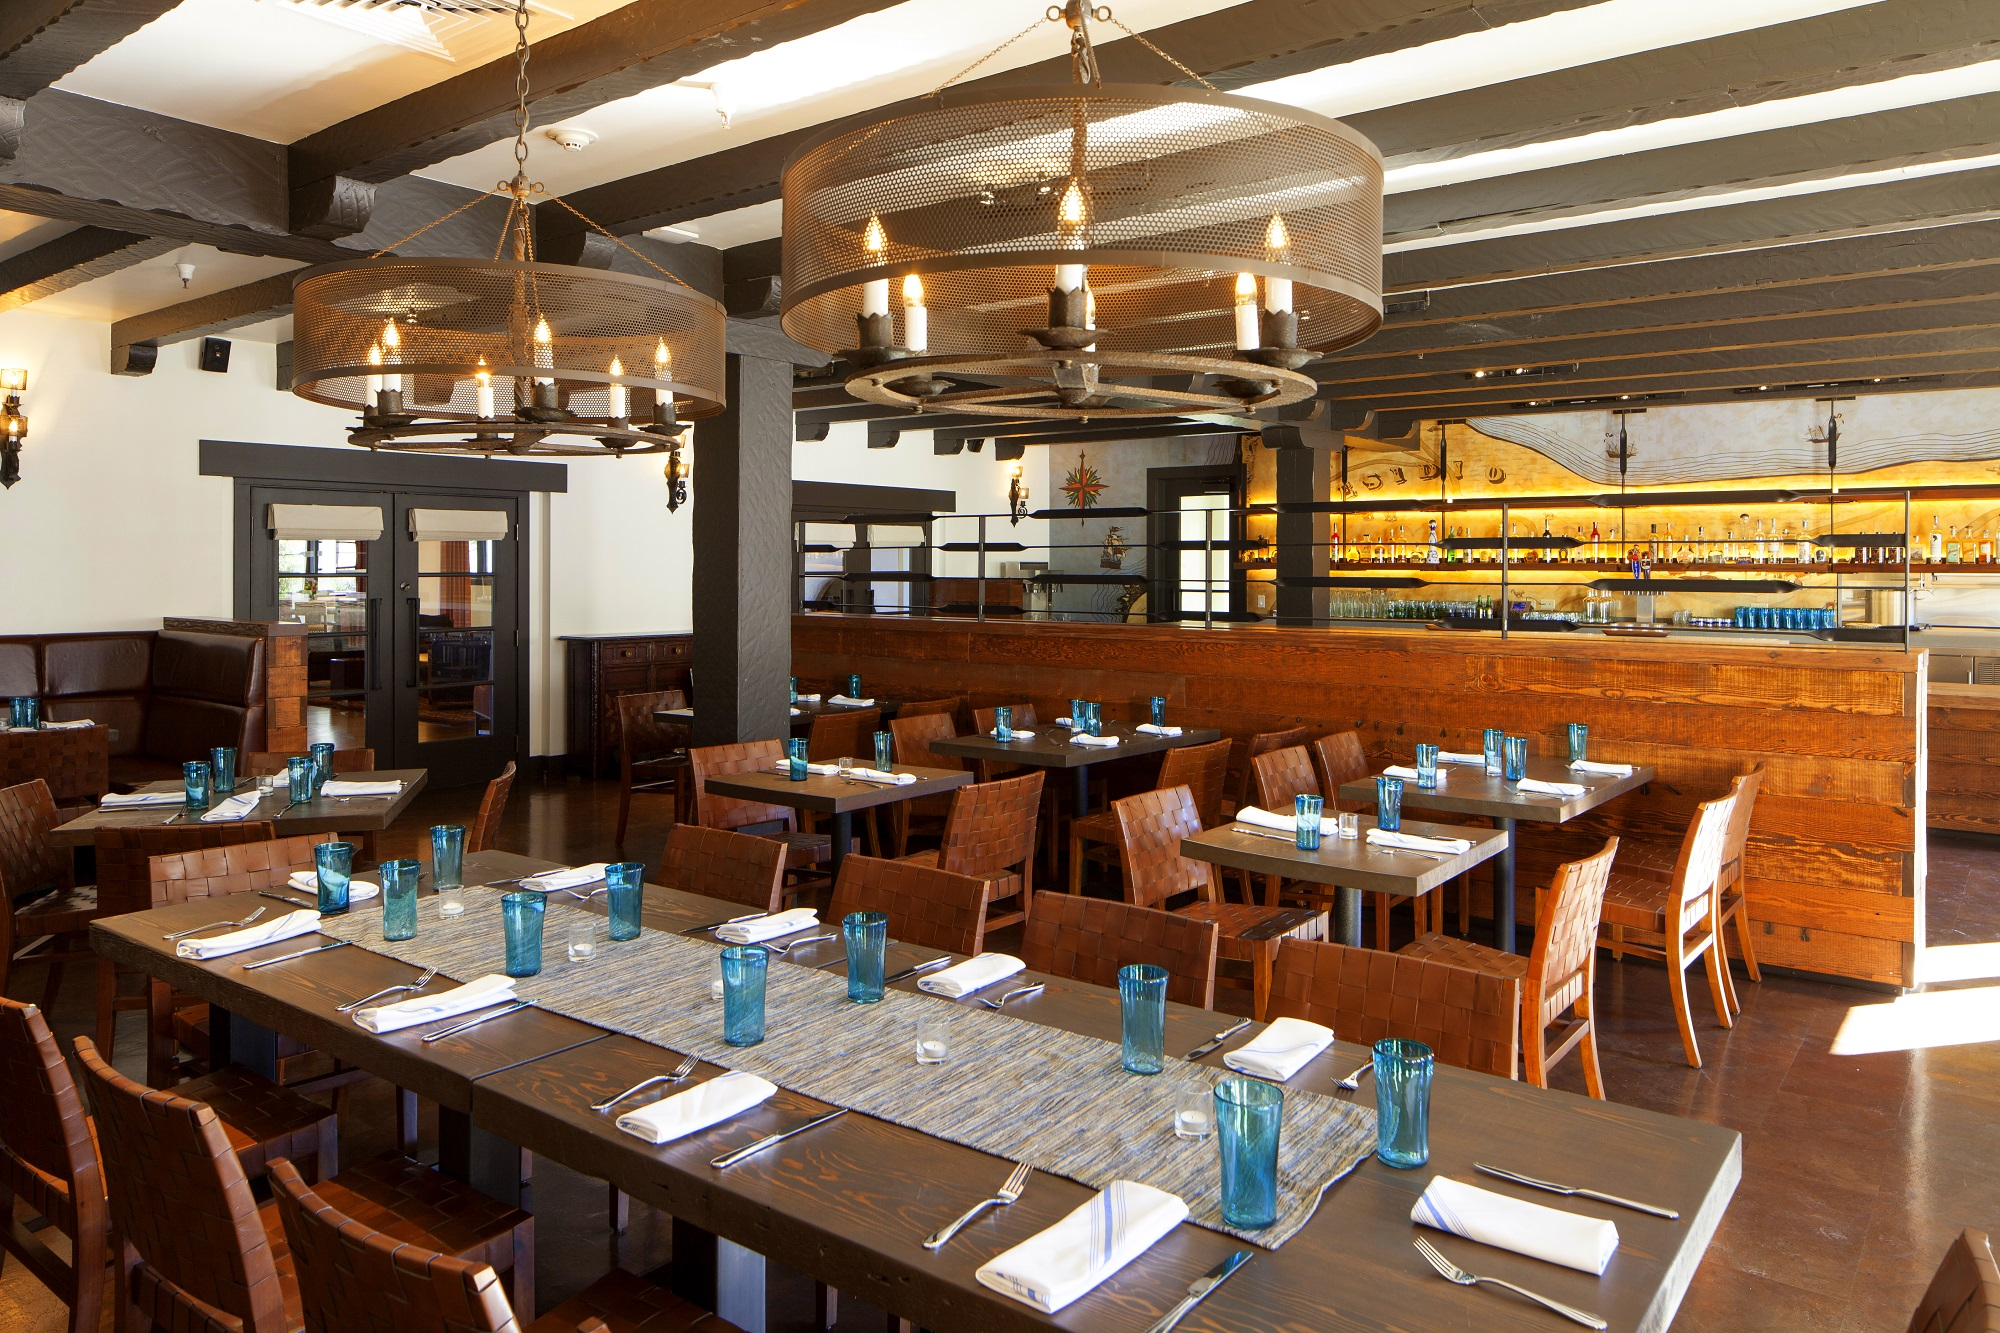 The completed dining room of Arguello Restaurant. | Photo courtesy of Arguello